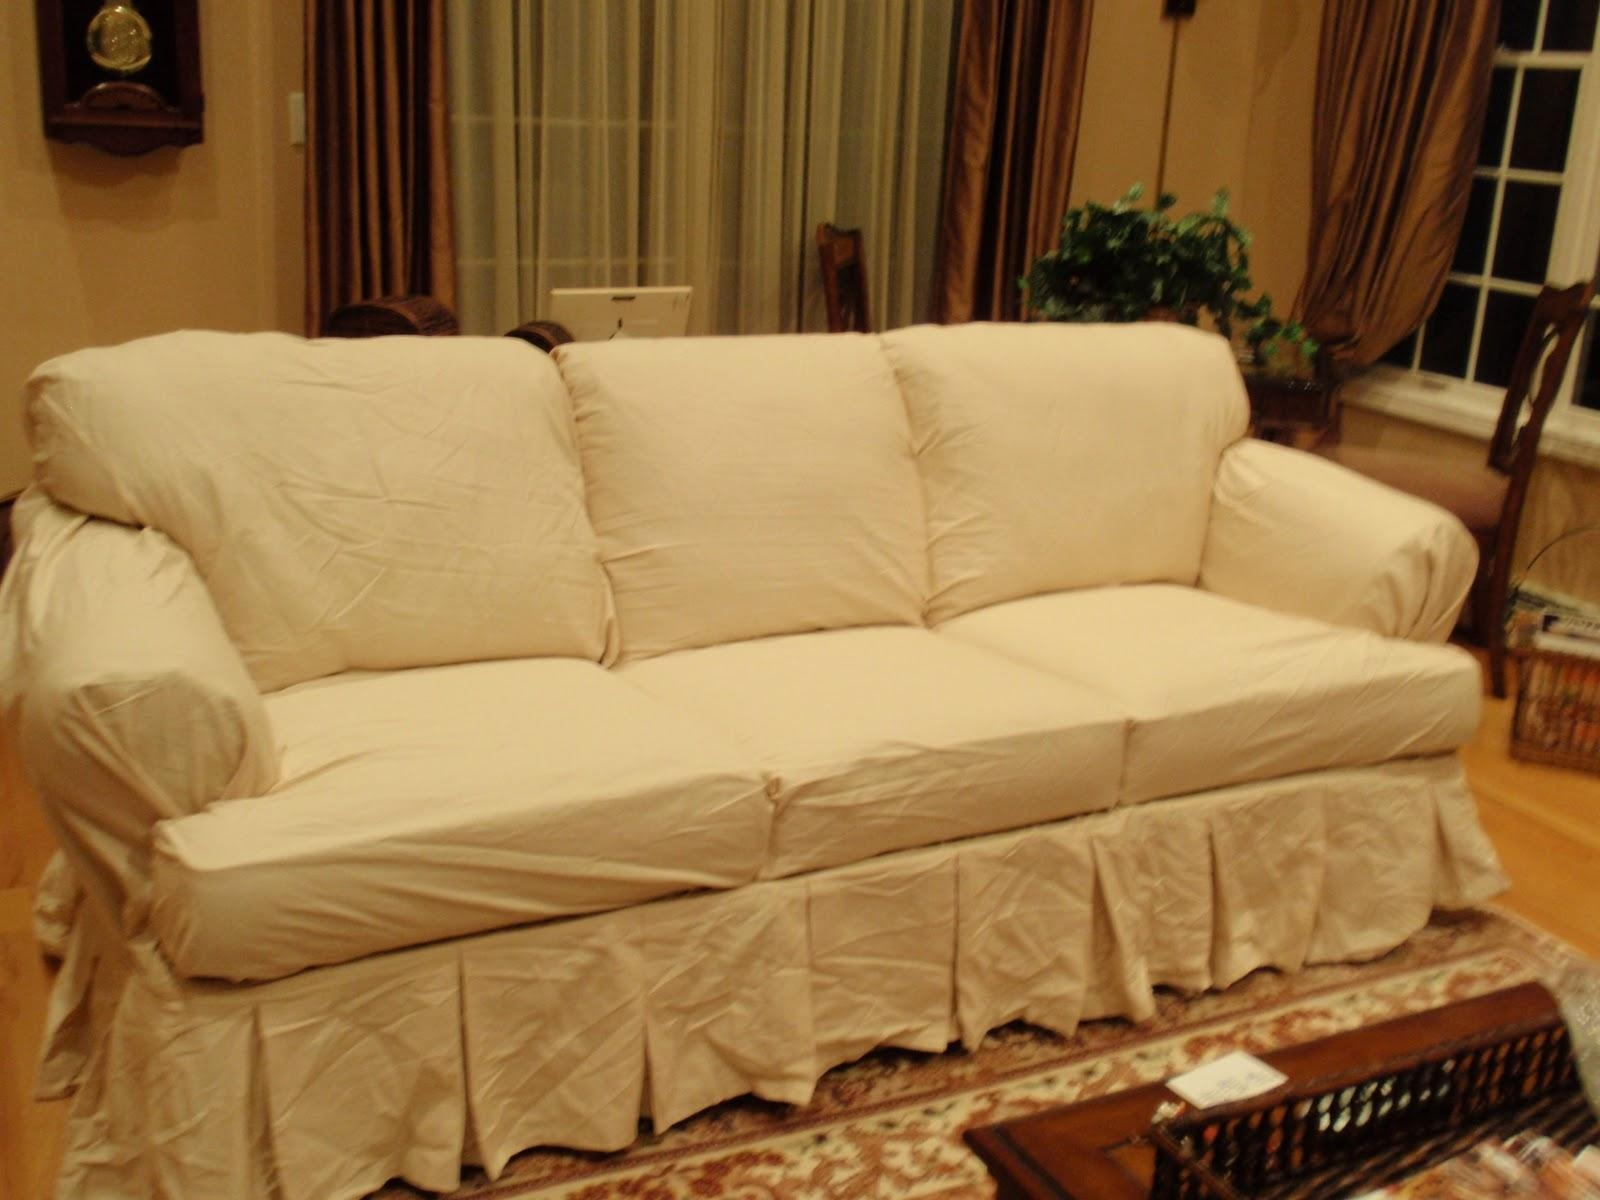 Furniture: Update Your Living Room With Best Sofa Slipcover Design Intended For Sleeper Sofa Slipcovers (Image 10 of 20)